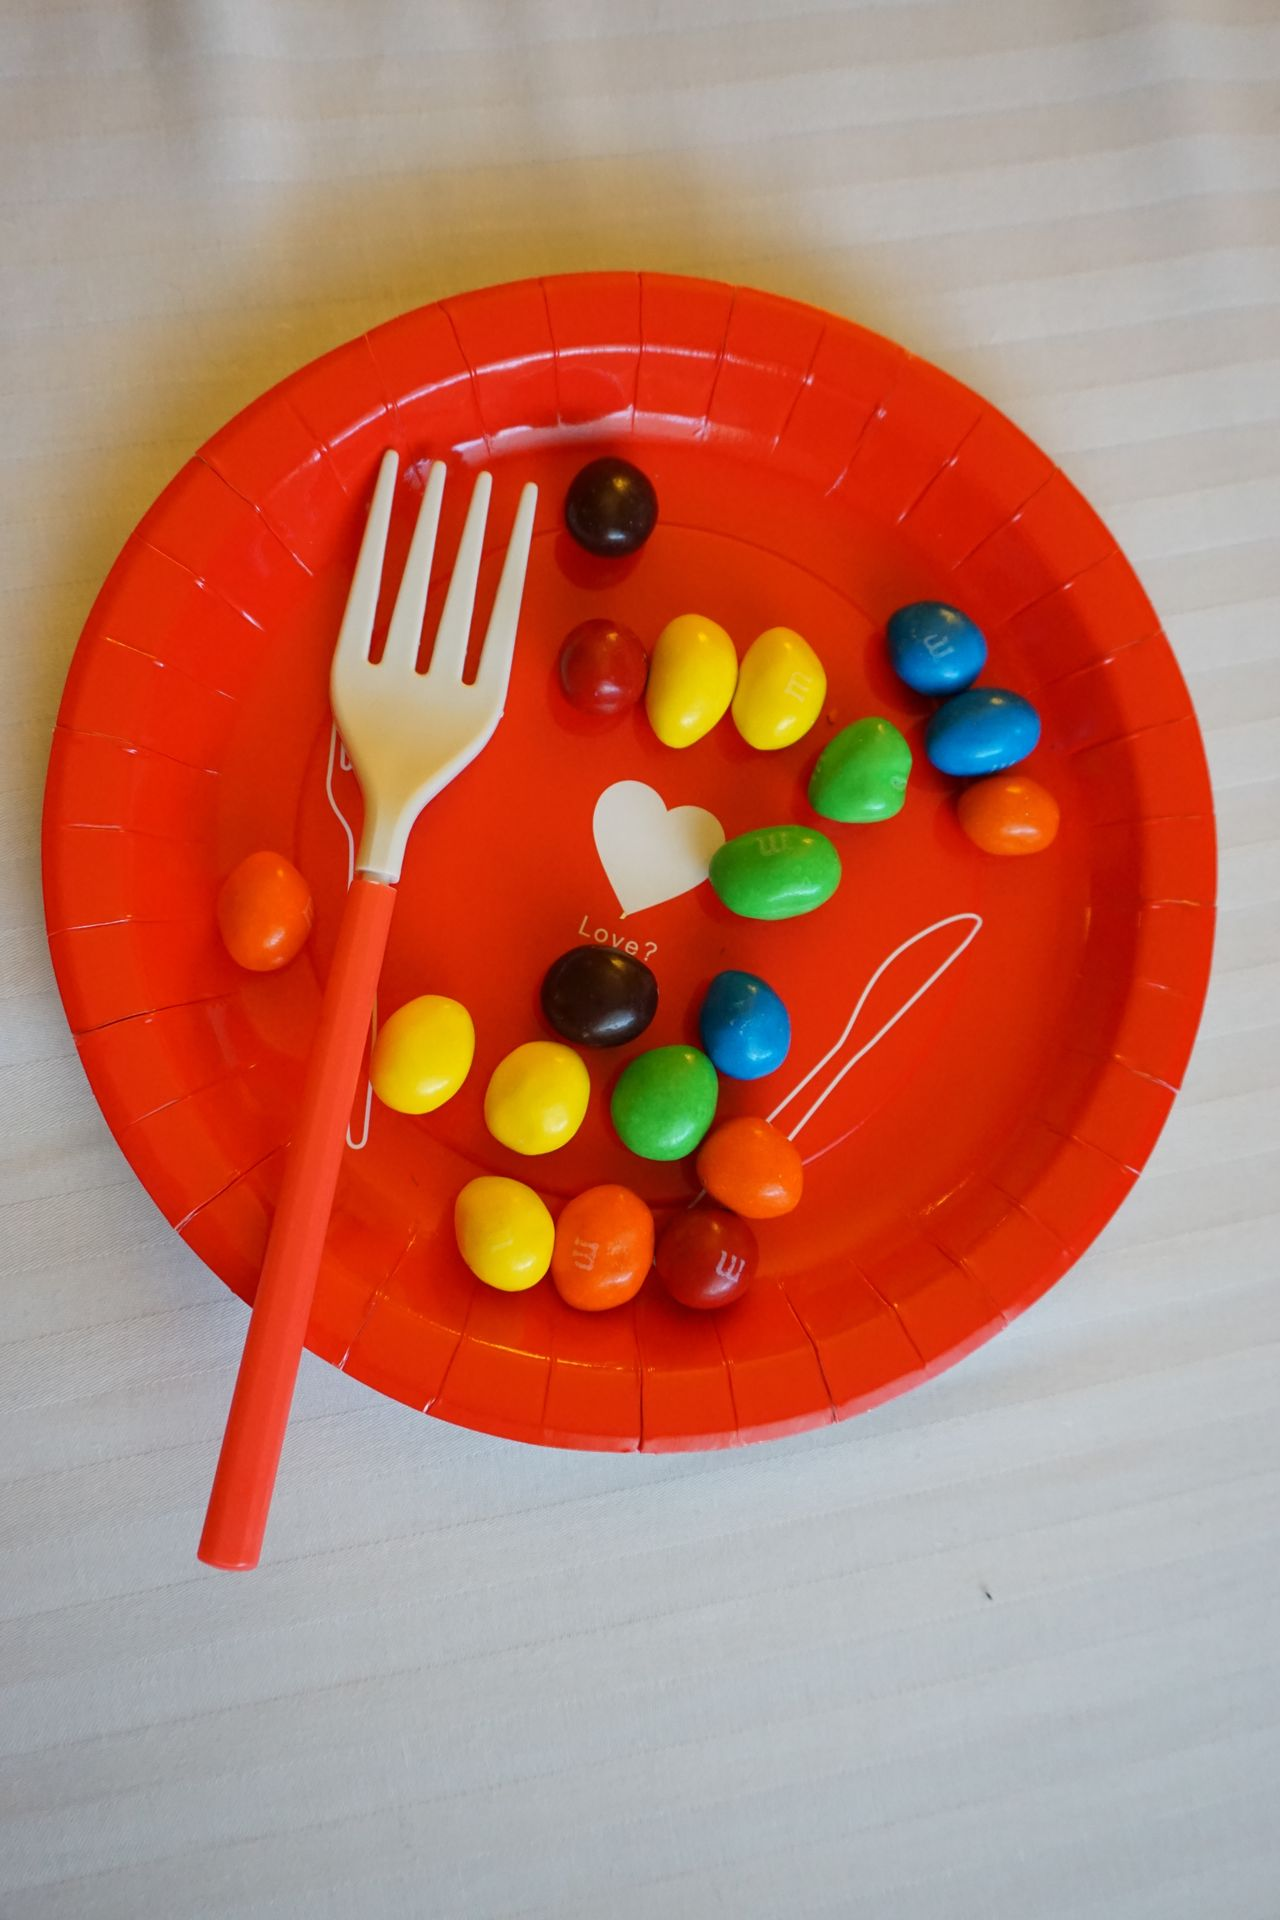 2016 Canada Chocolate Colorful Desssert Dish Fork M&m's M&ms Red Sweet Vancouver カナダ チョコレート バンクーバー